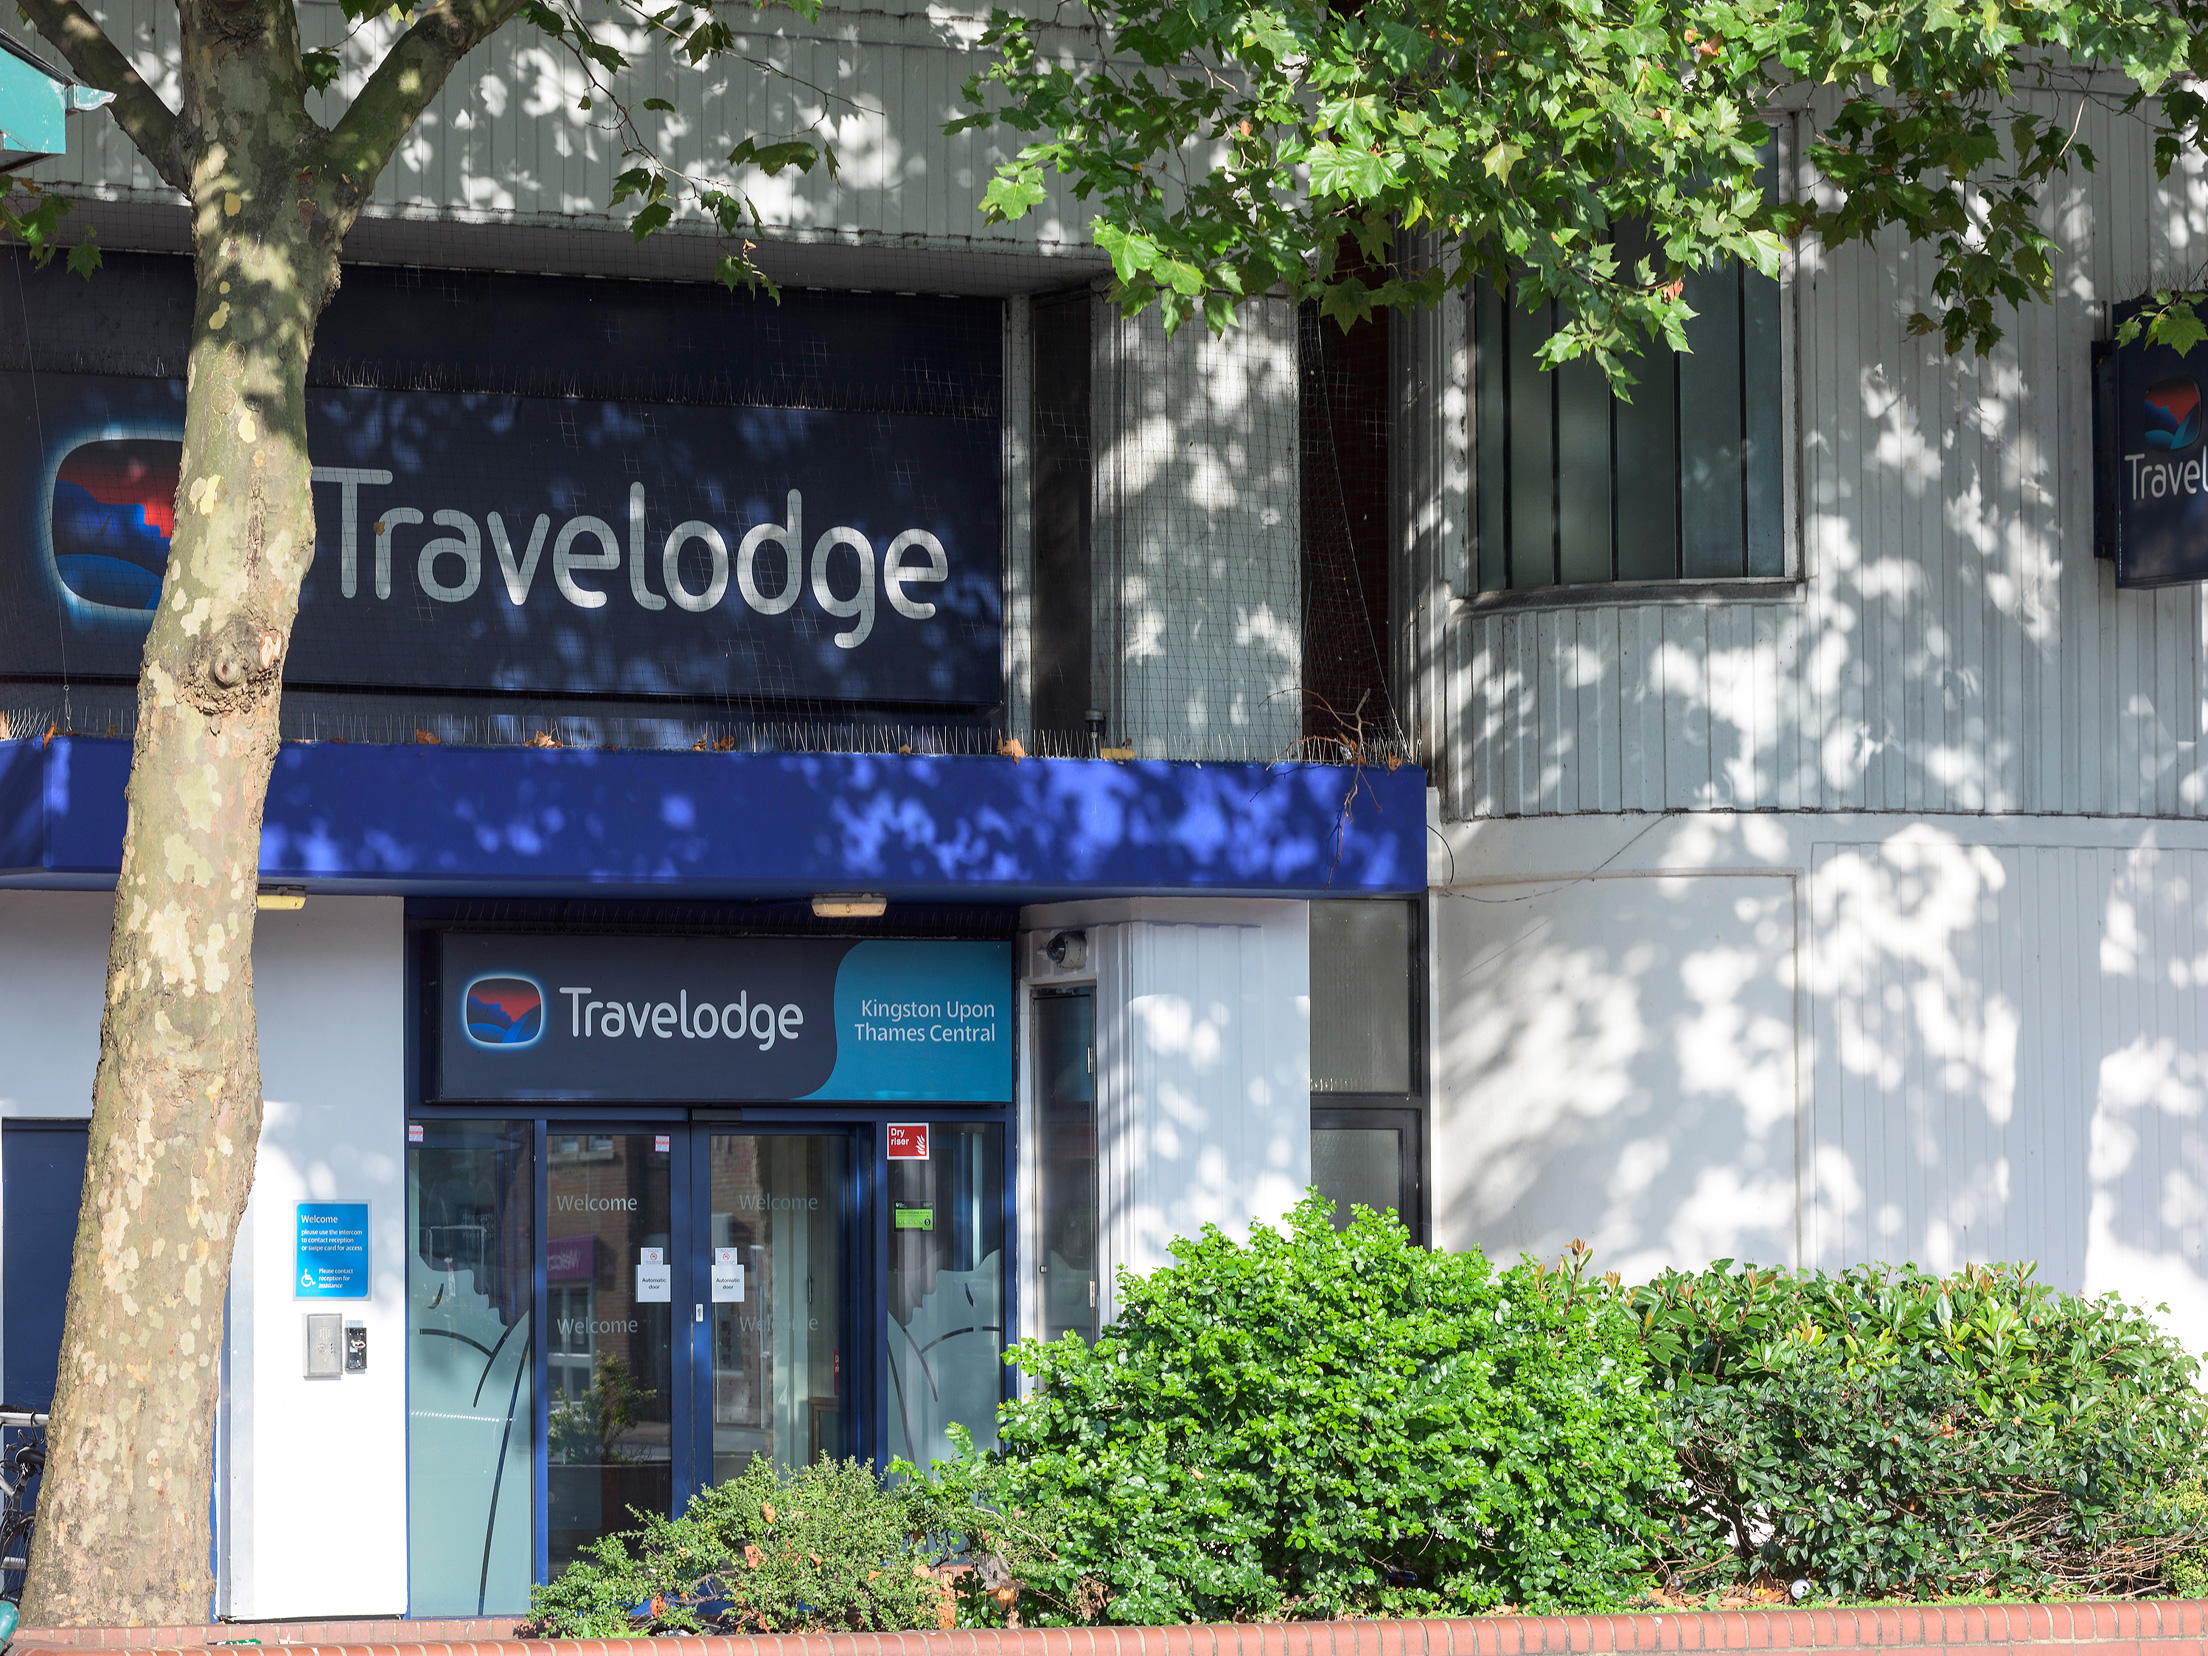 Travelodge London Kingston Upon Thames Central, London